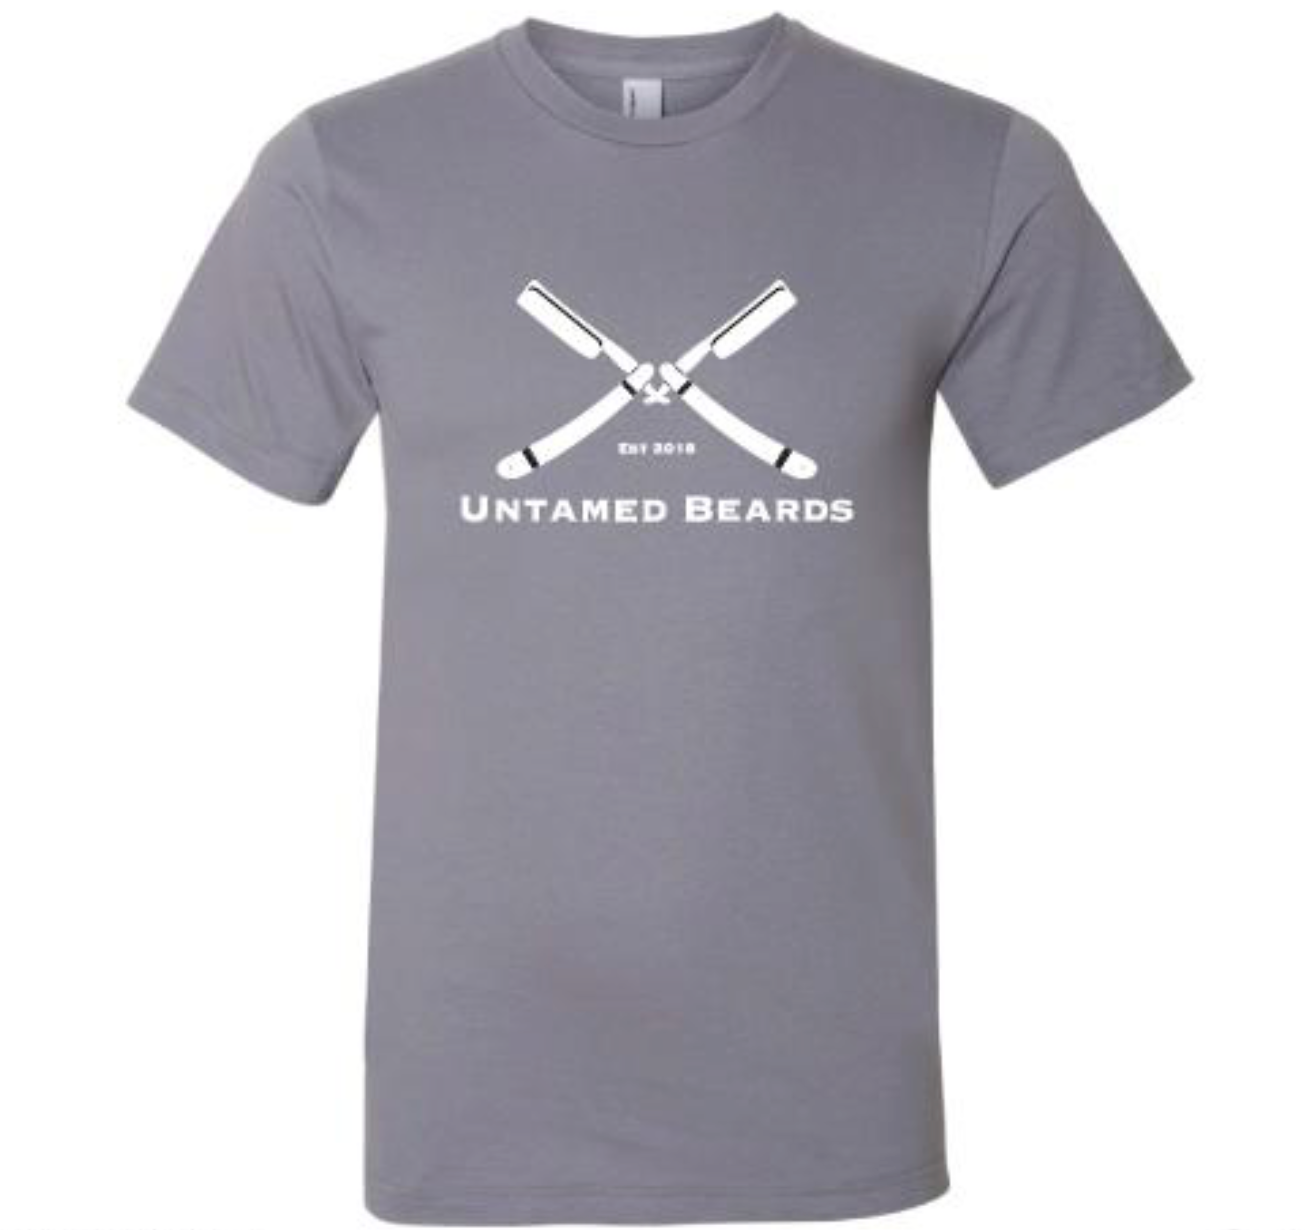 Untamed Beards T-Shirt